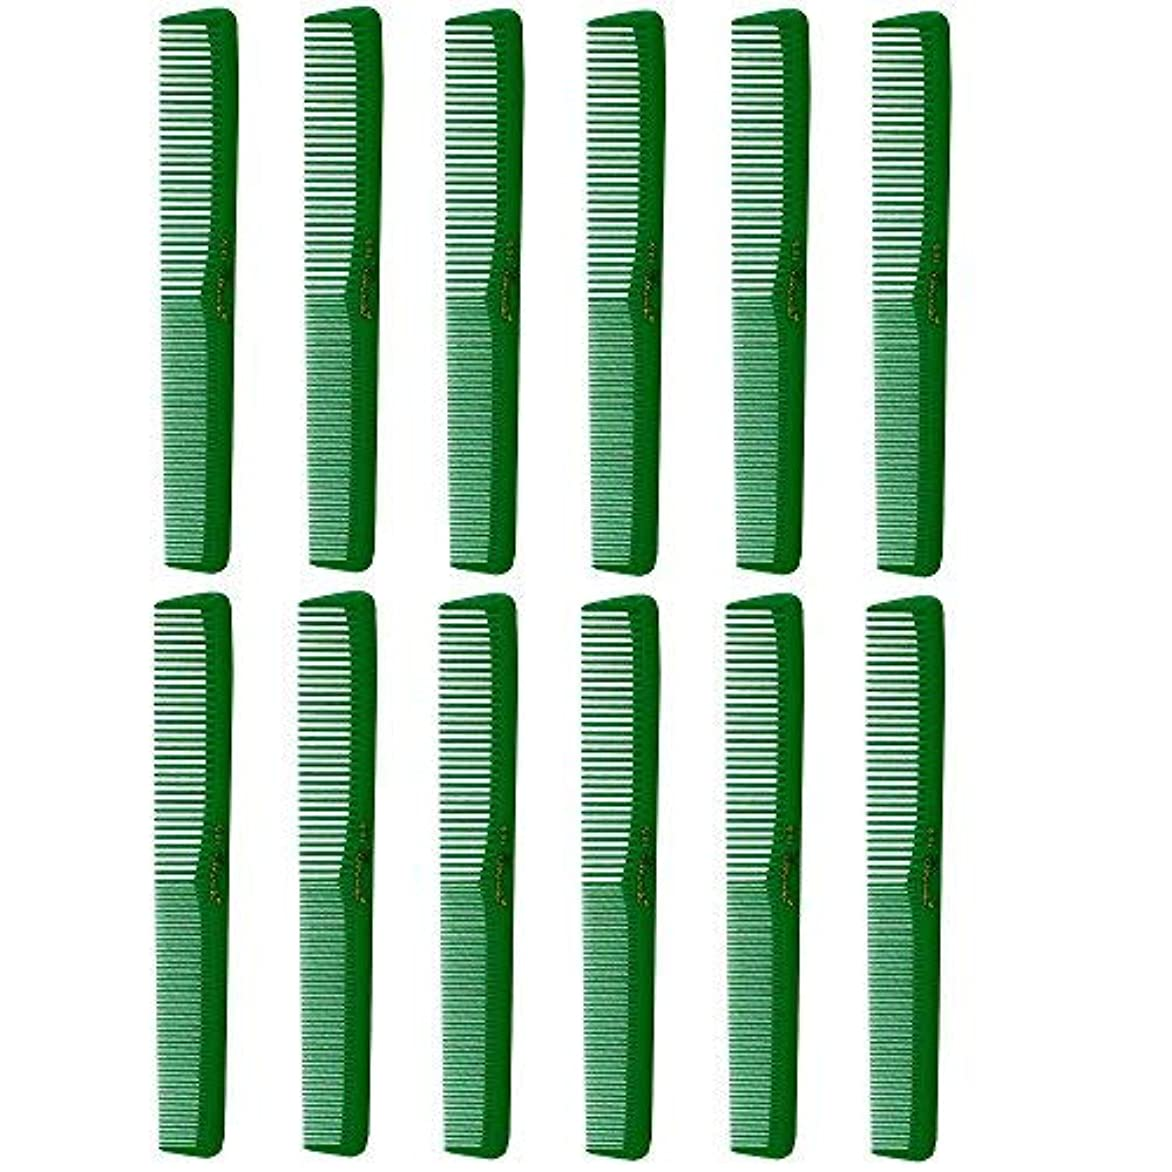 所有権隙間キャンバスBarber Beauty Hair Cleopatra 400 All Purpose Combs (12 Pack) 12 x SB-C400-GREEN [並行輸入品]